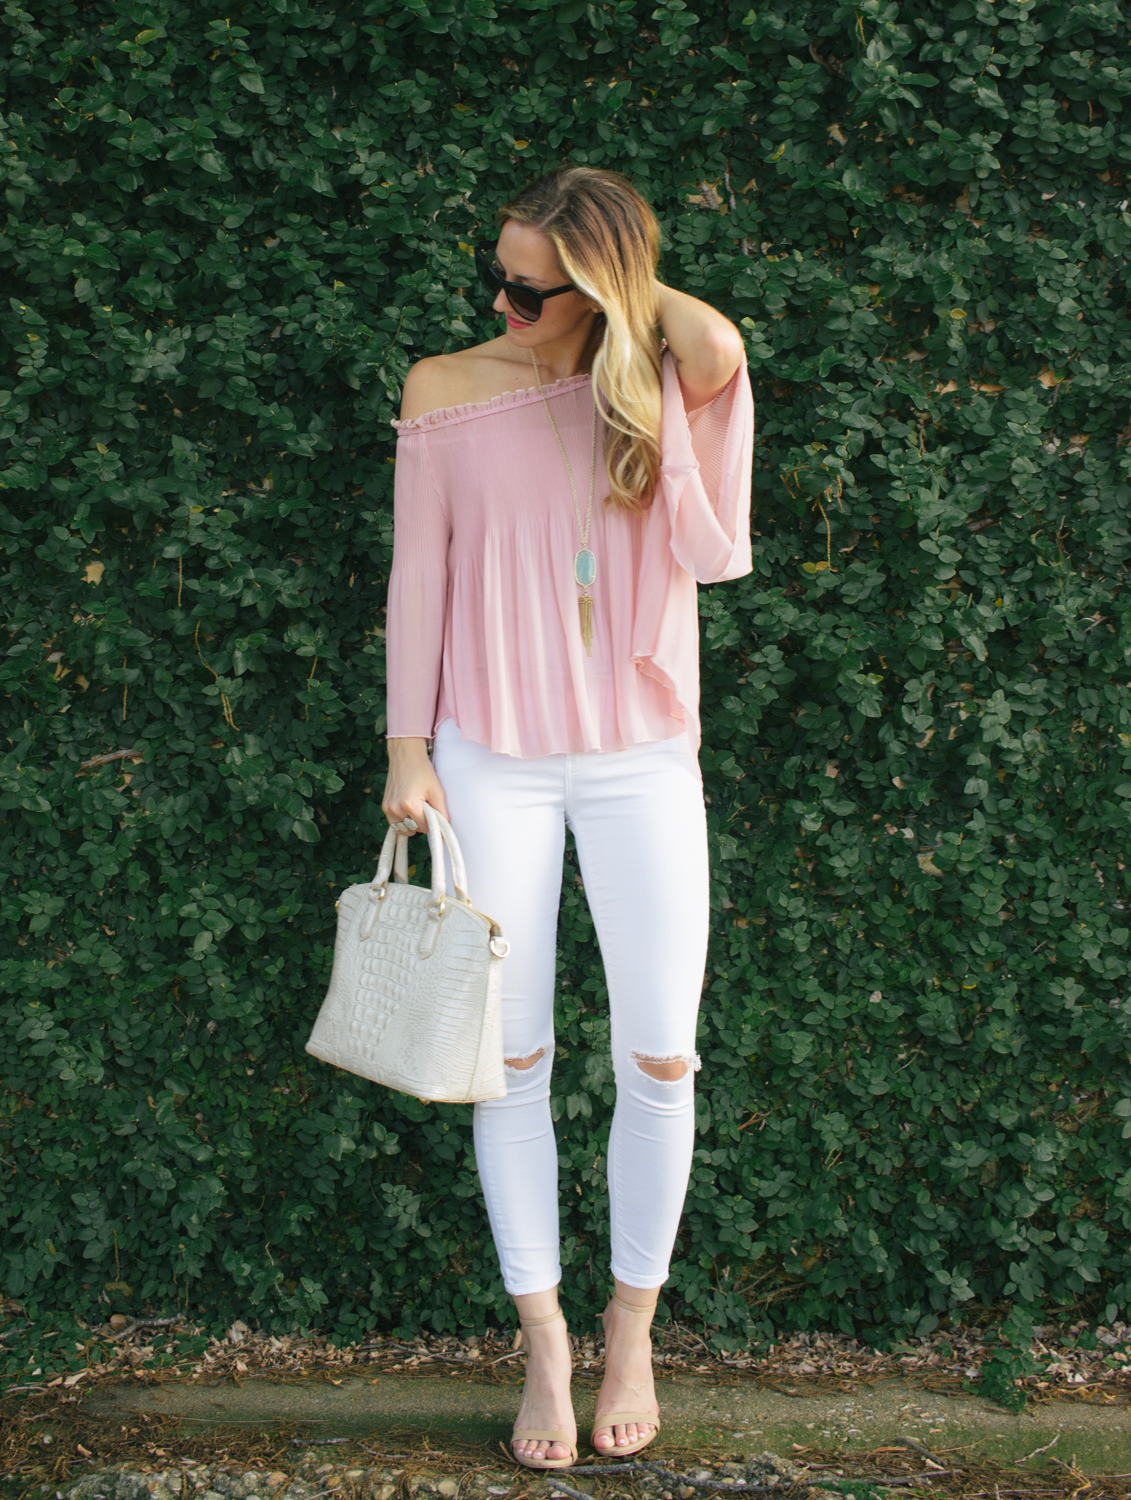 livvyland-blog-olivia-watson-austin-texas-fashion-blogger-blush-pink-off-shoulder-top-topshop-white-skinny-jeans-date-night-outfit-summer-1